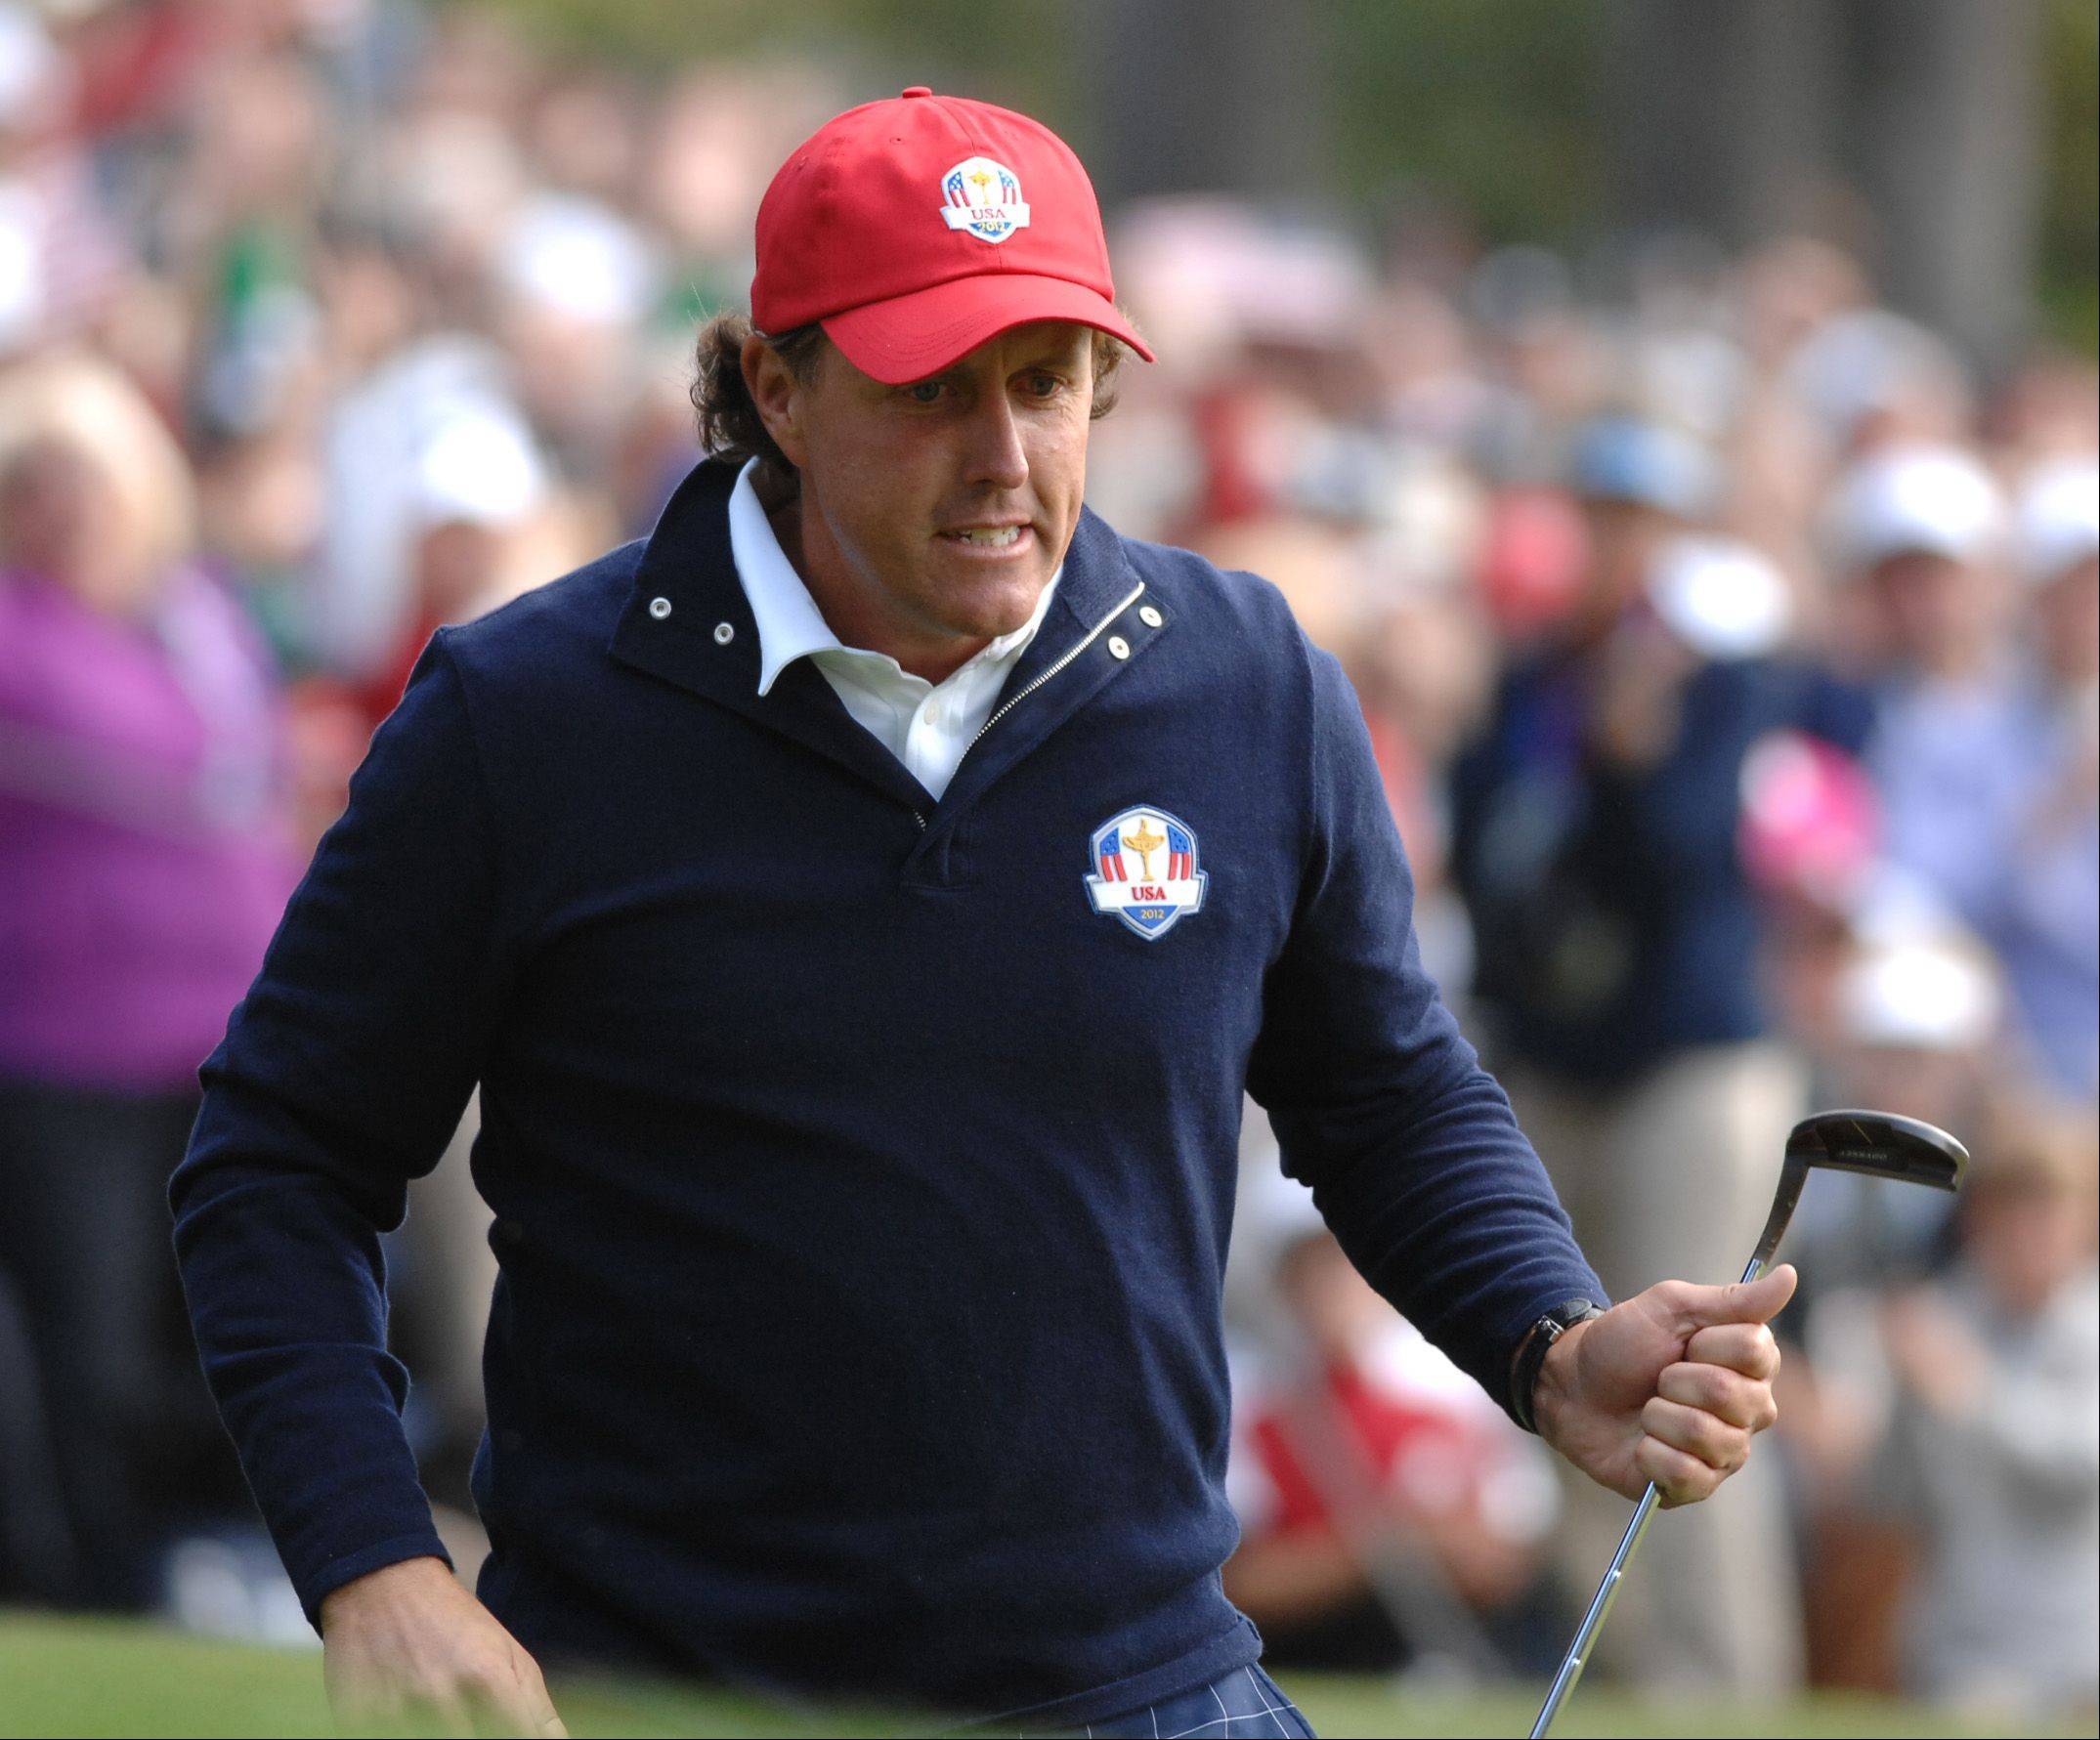 Phil Mickelson grits his teeth after getting pumped up with teammate Keegan Bradley during the foursome match Friday morning. Mickelson hit a birdie putt on 13.